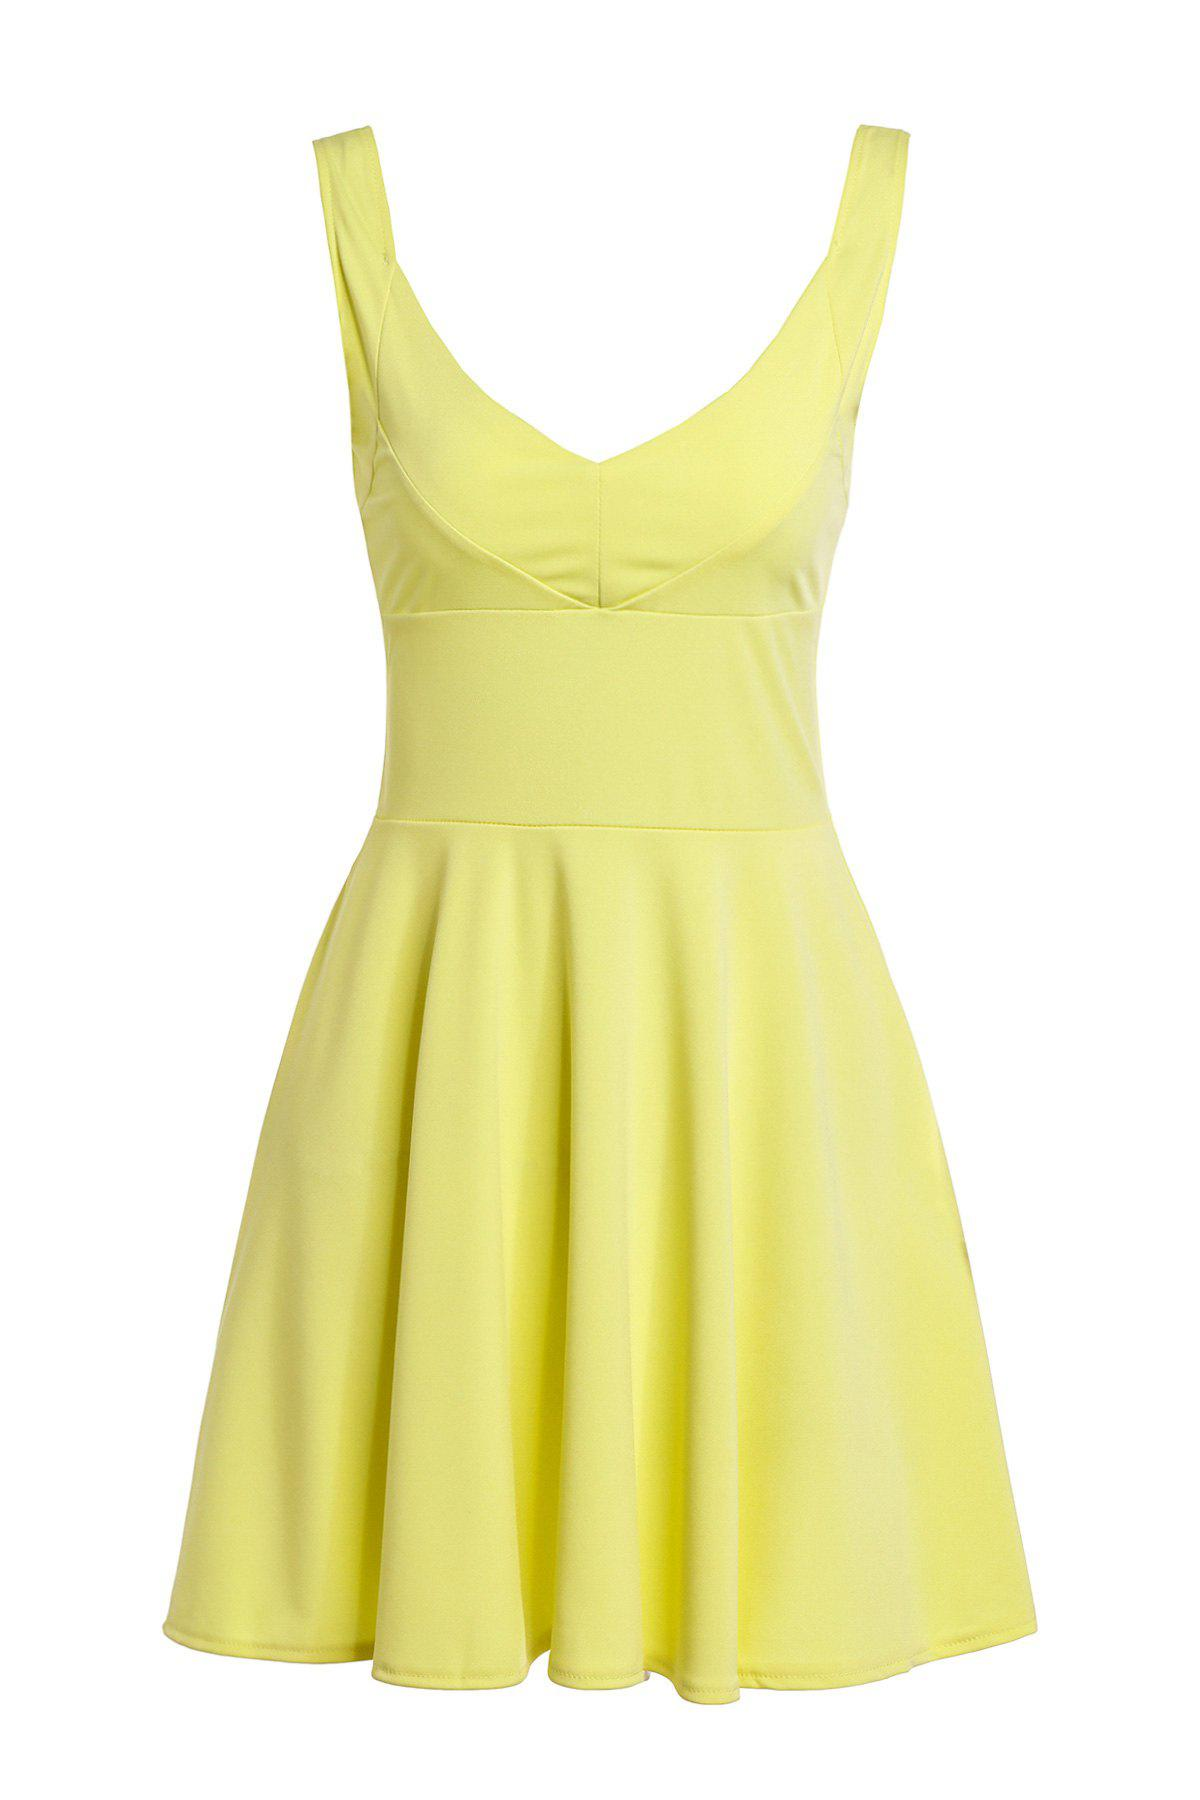 Trendy Sleeveless Plunging Neck Slimming Solid Color Women's Dress